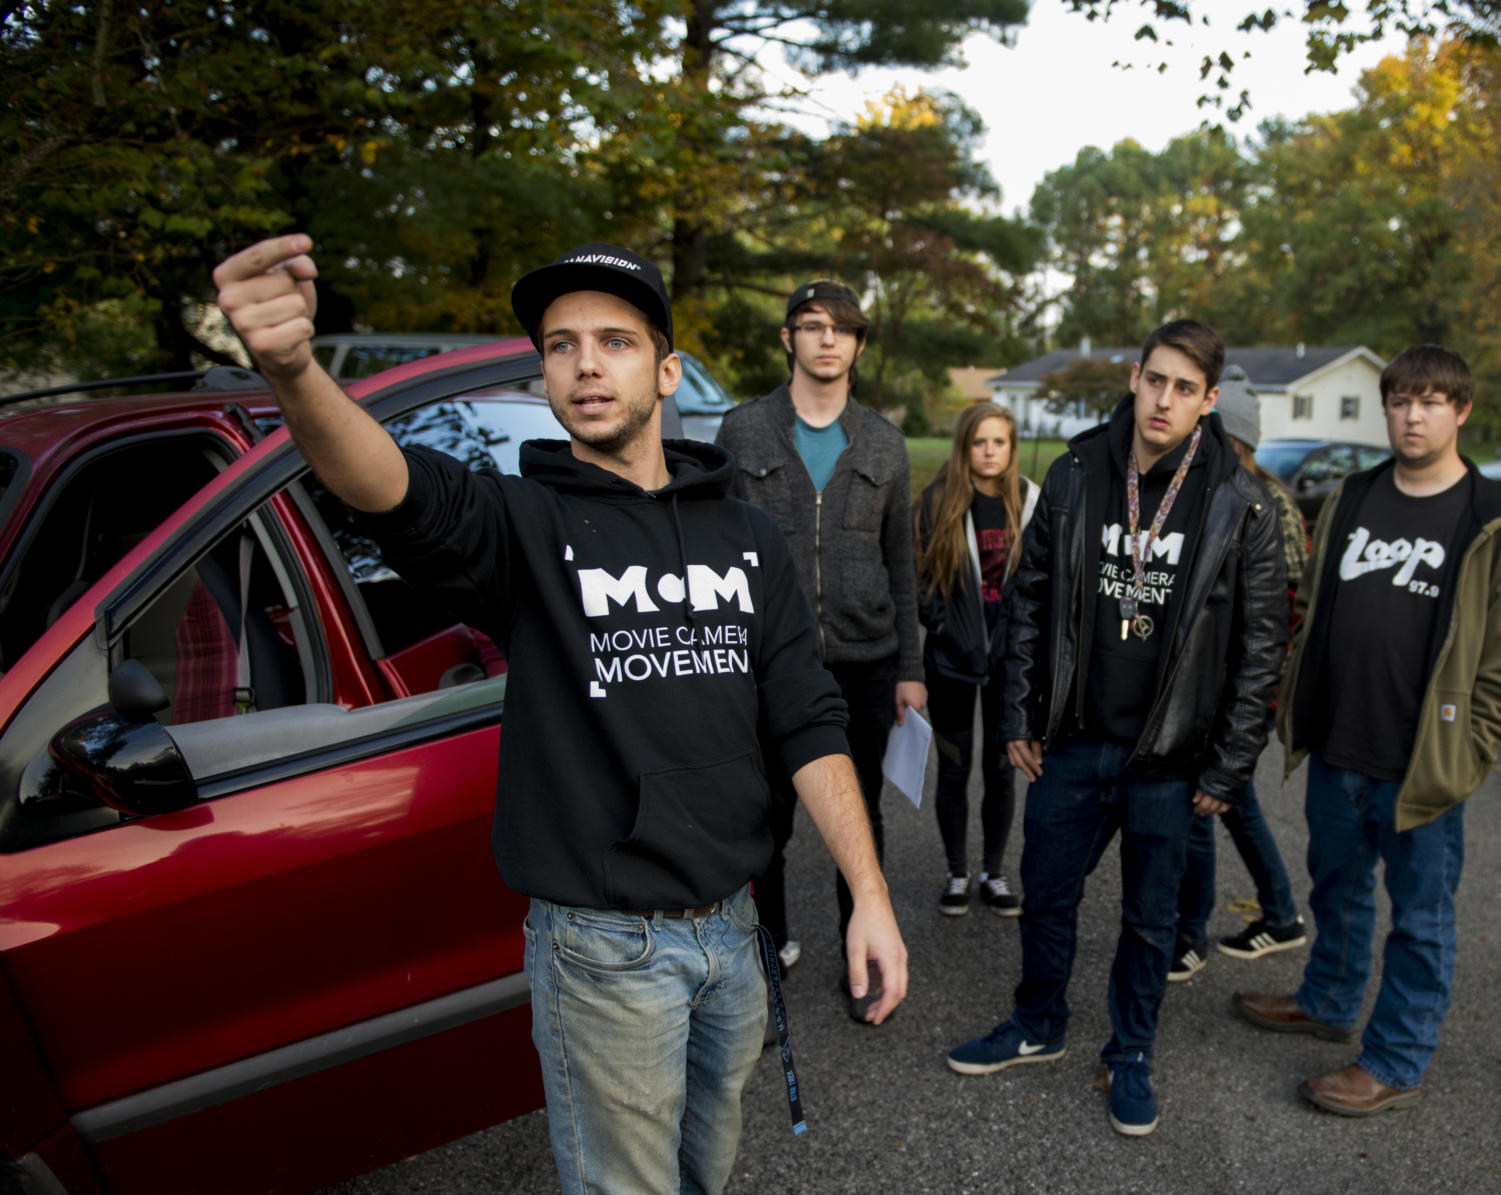 Senior cinema major Michael Morones, of Cary, directs the camera crew Friday, Oct. 27, 2017 on the set of